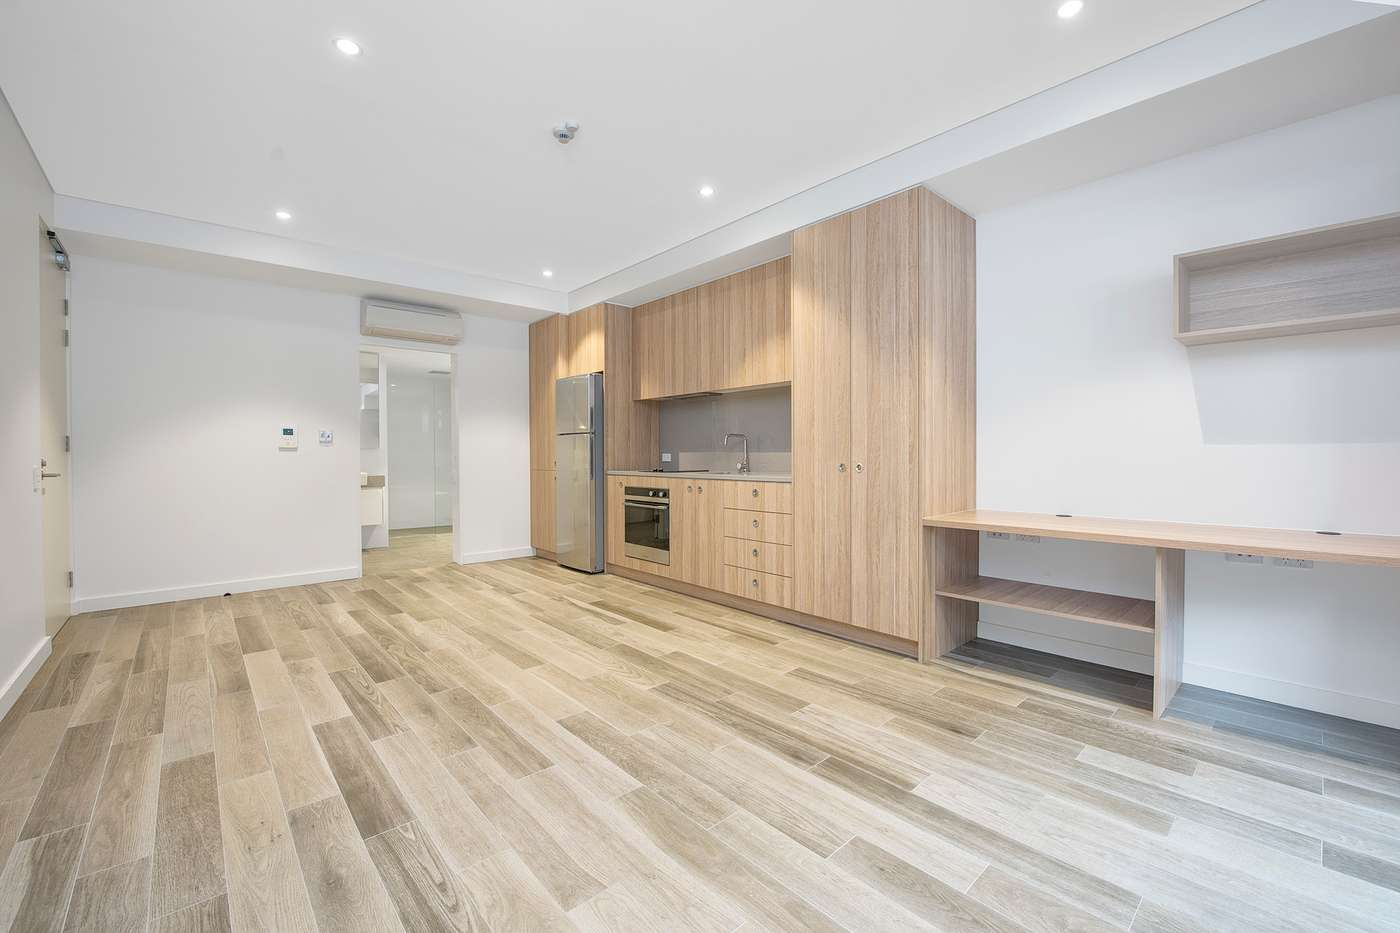 Main view of Homely studio listing, 35 Gower Street, Summer Hill, NSW 2130